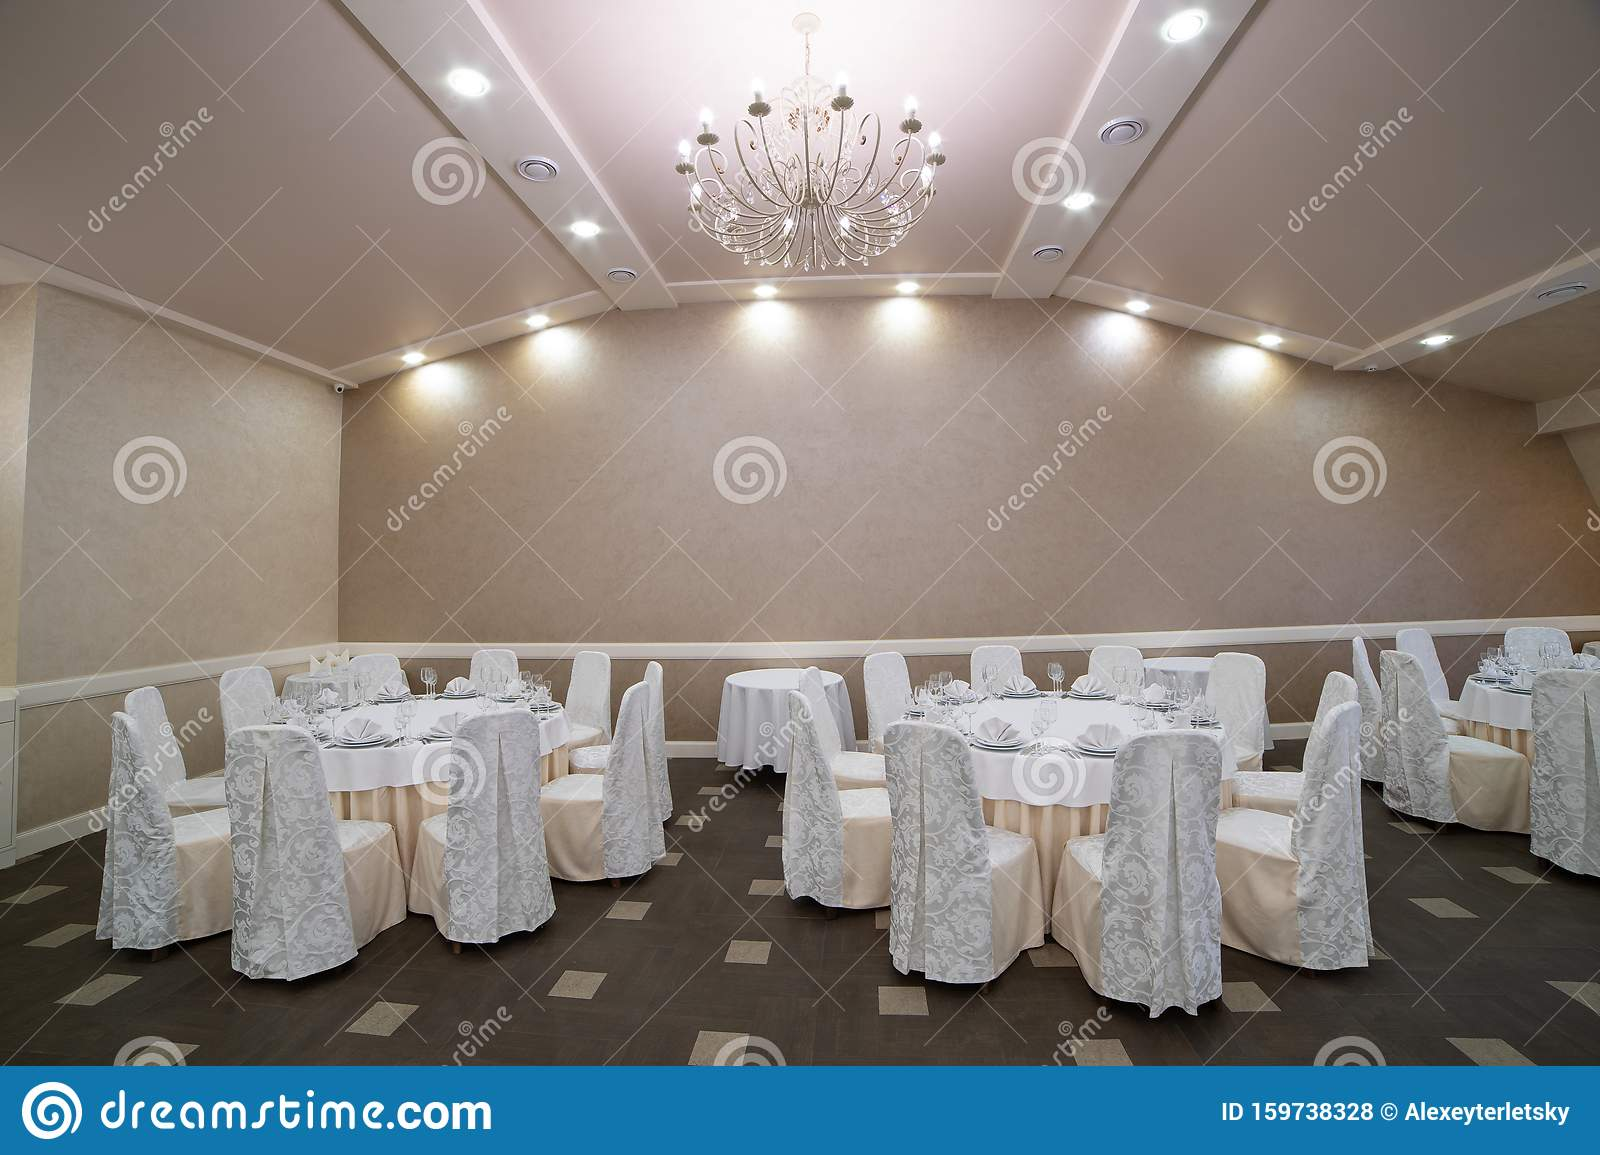 Cozy Restaurant Interior Cafe Lounge Table Party Stock Photo Image Of Table Fried 159738328